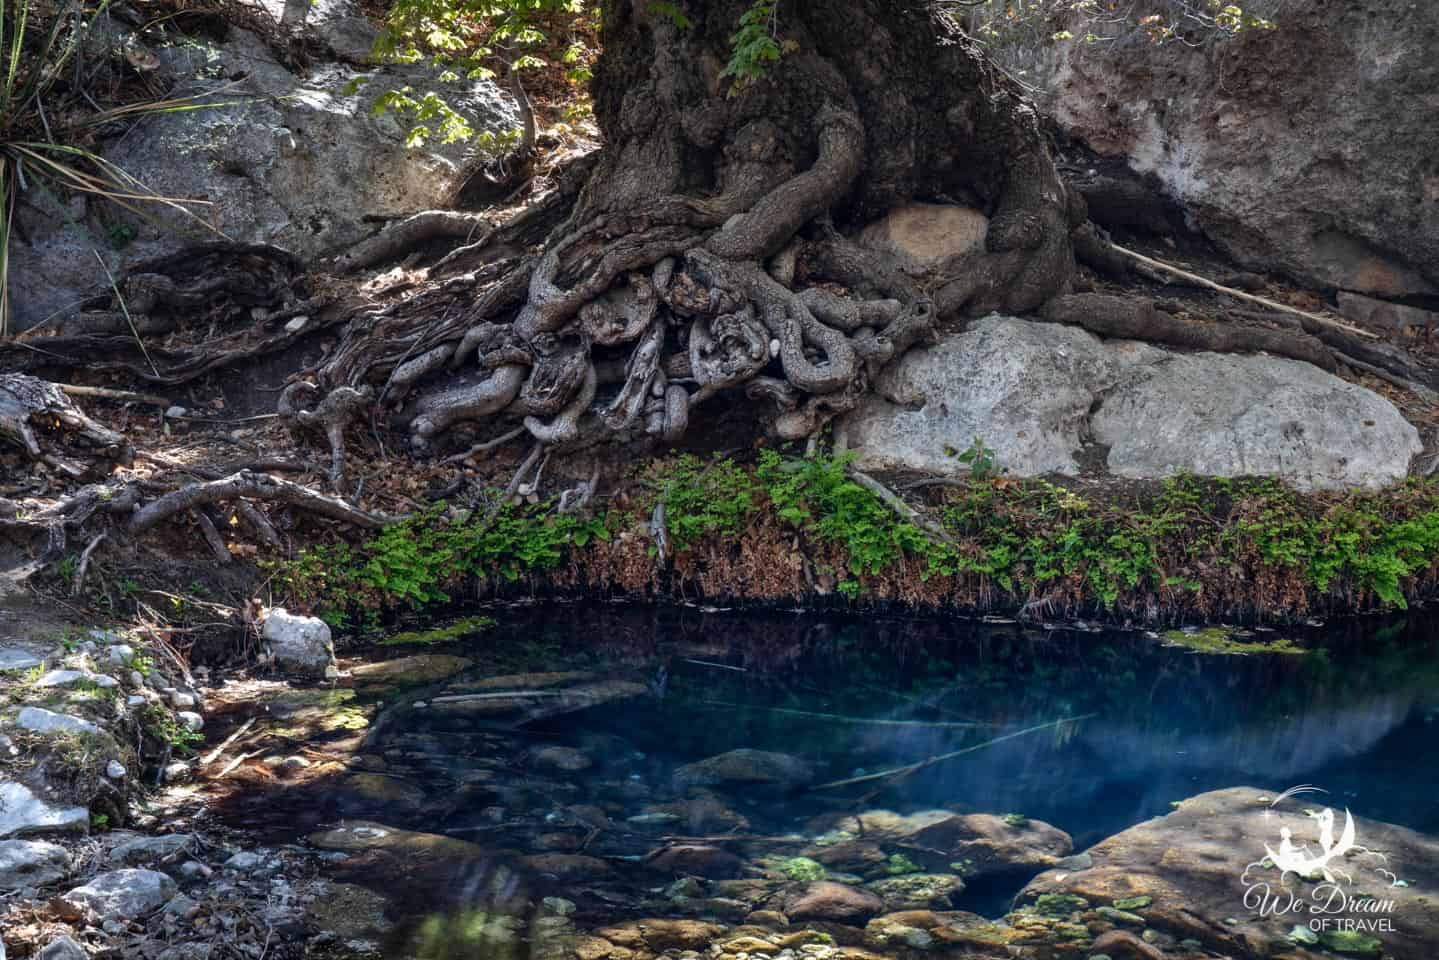 The Smith Spring offers a desert oasis in the Guadalupe Mountains.